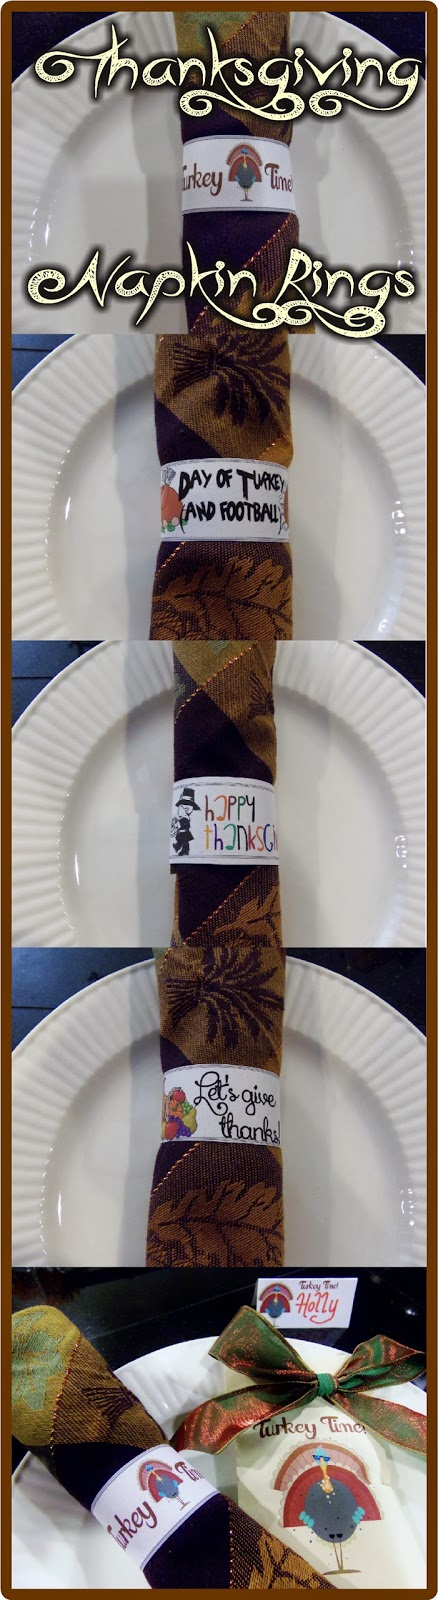 http://hollyshome-hollyshome.blogspot.com/2013/11/thanksgiving-napkin-rings-free-printable.html